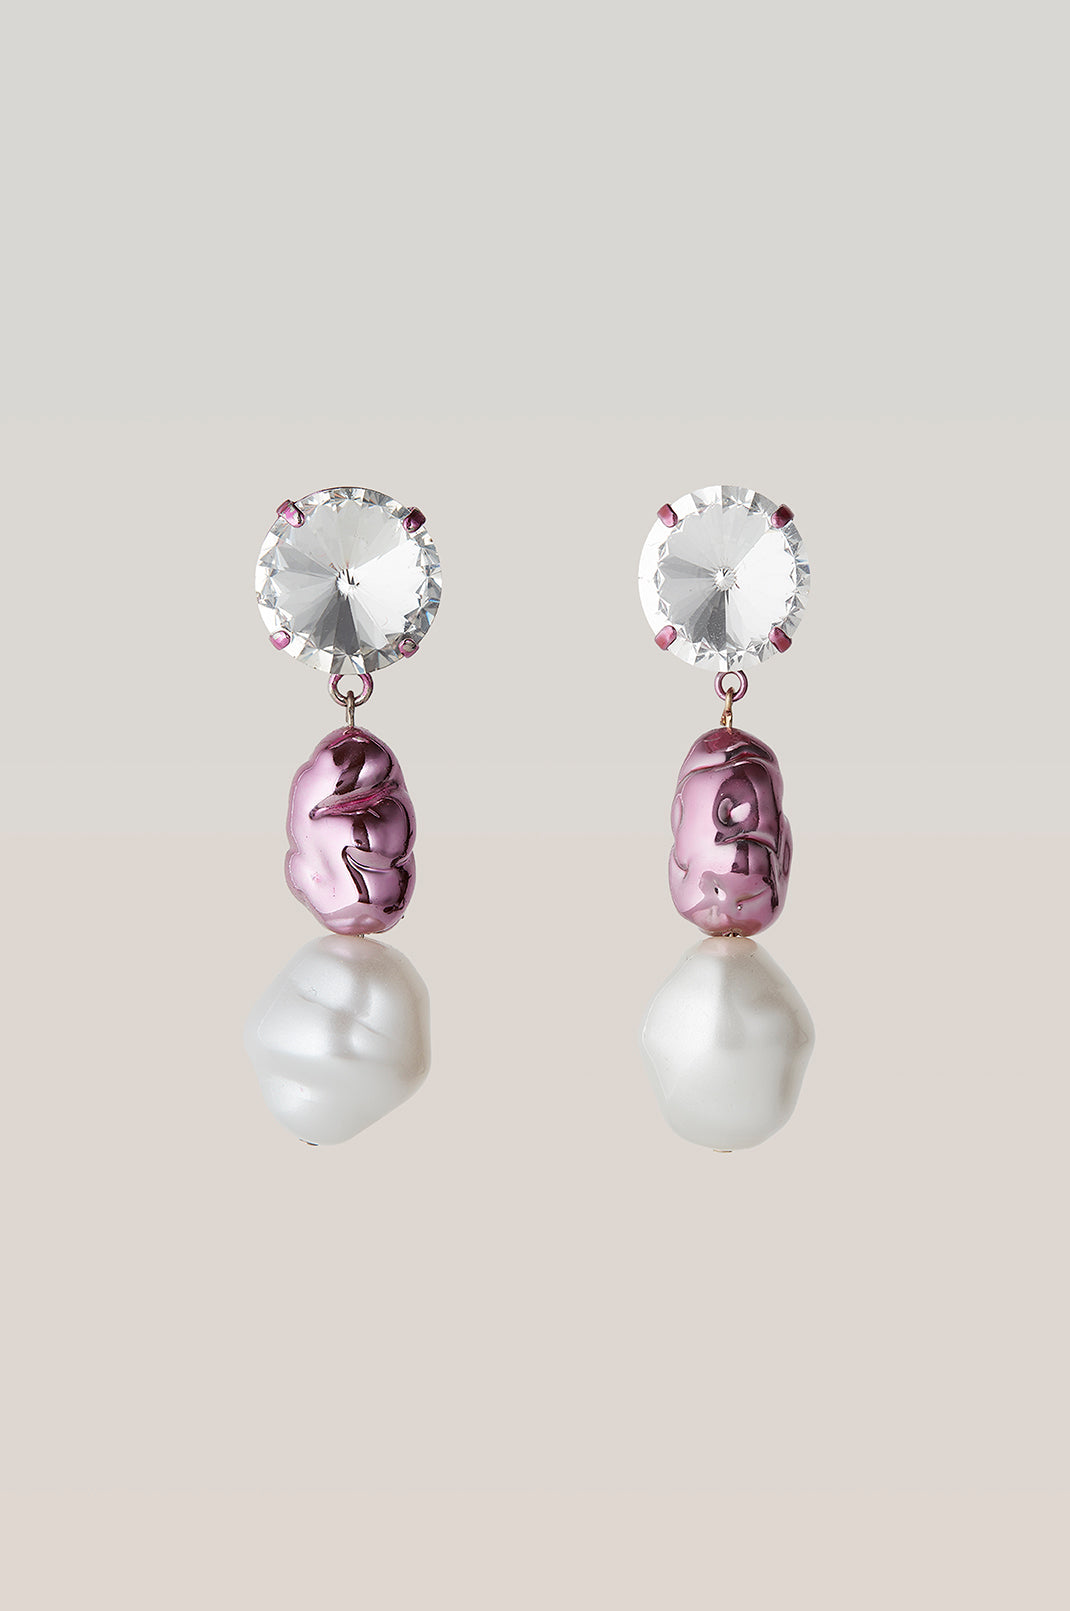 safsafu CHEWING GUM PINK EARRINGS Safsafu